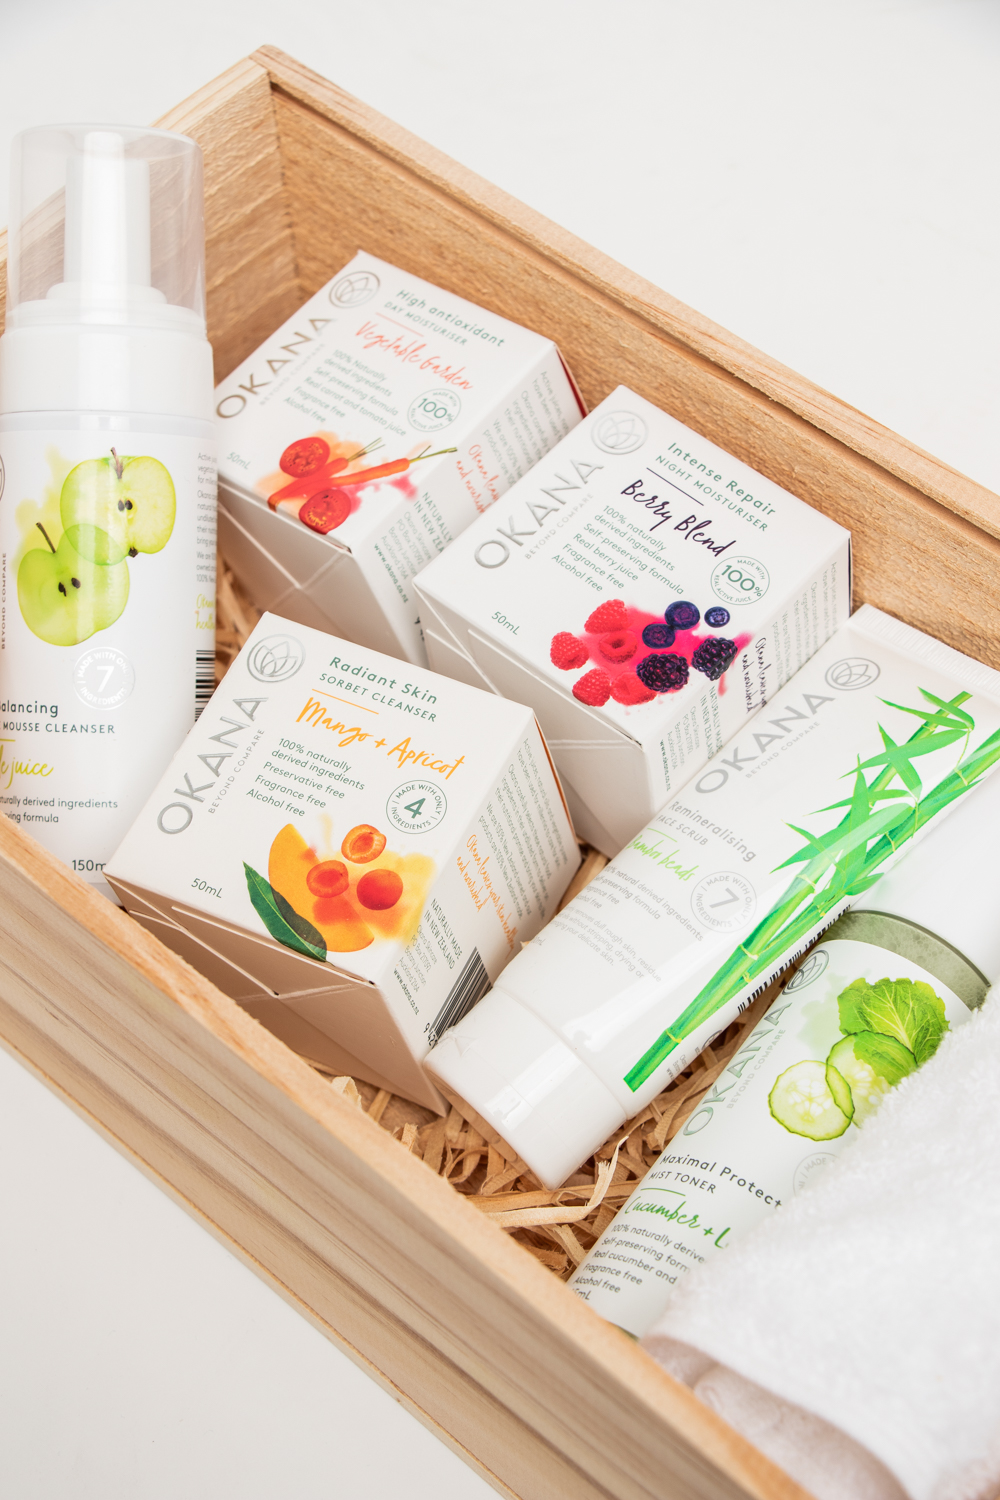 Okana Natural Skincare | StolenInspiration.com NZ Fashion Blog